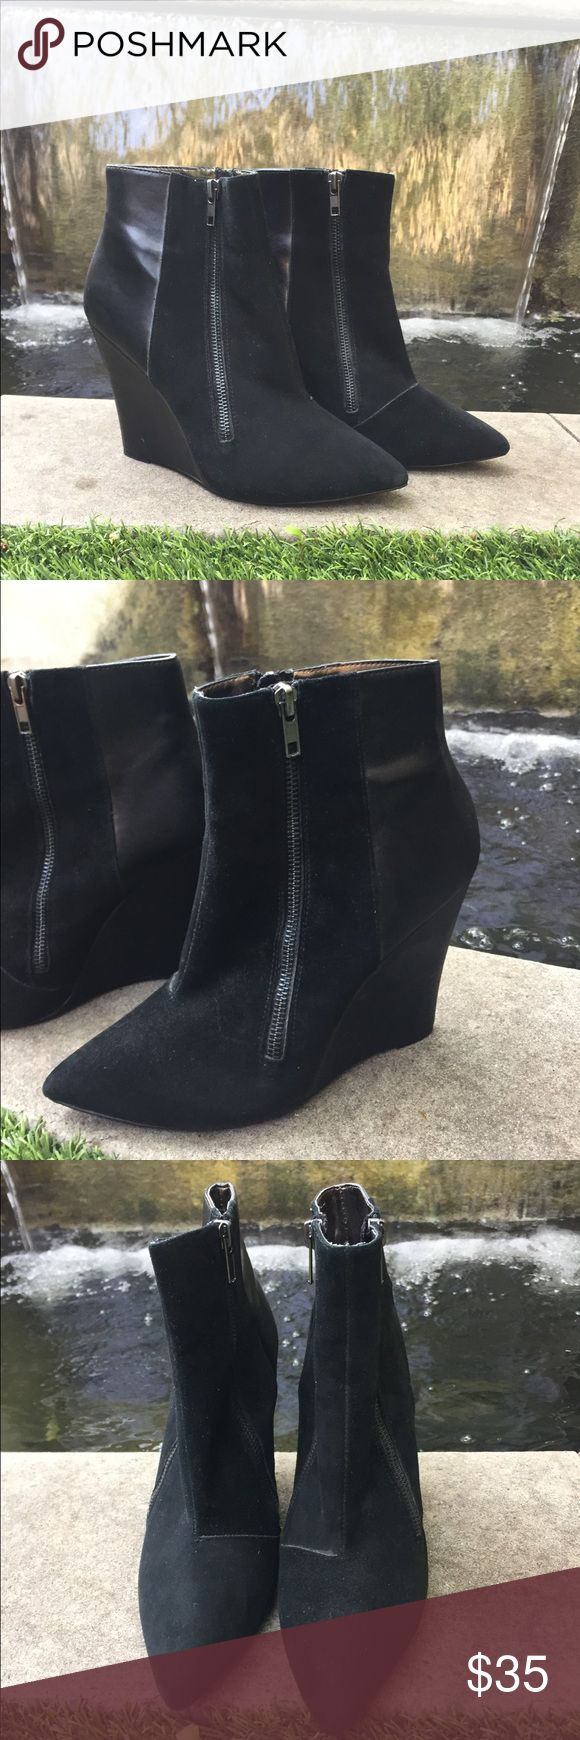 Steve Madden wedge bootie🖤 Steve Madden black wedge bootie - women's size 9 - these are in great condition - super sleek & perfect for upcoming fall/winter months 🖤 Steve Madden Shoes Ankle Boots & Booties